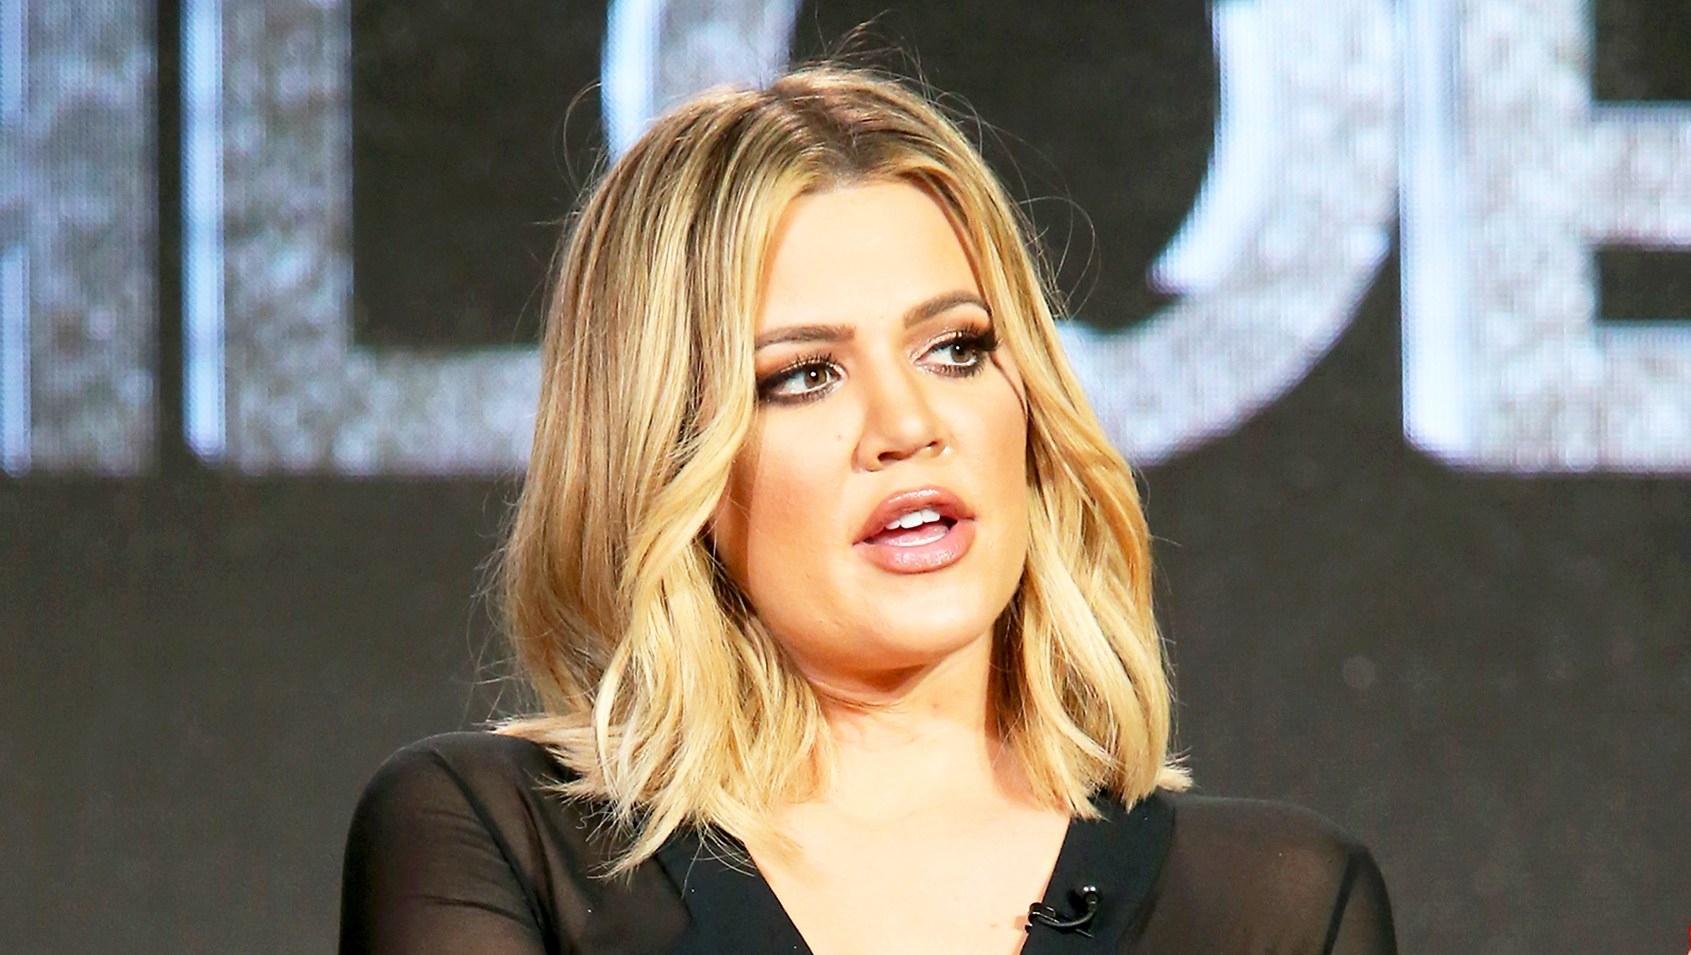 Khloe Kardashian during FYI Kocktails with Khloe panel as part of the A+E Network portion of This is Cable 2016 Television Critics Association Press Tour at Langham Hotel in Pasadena, California